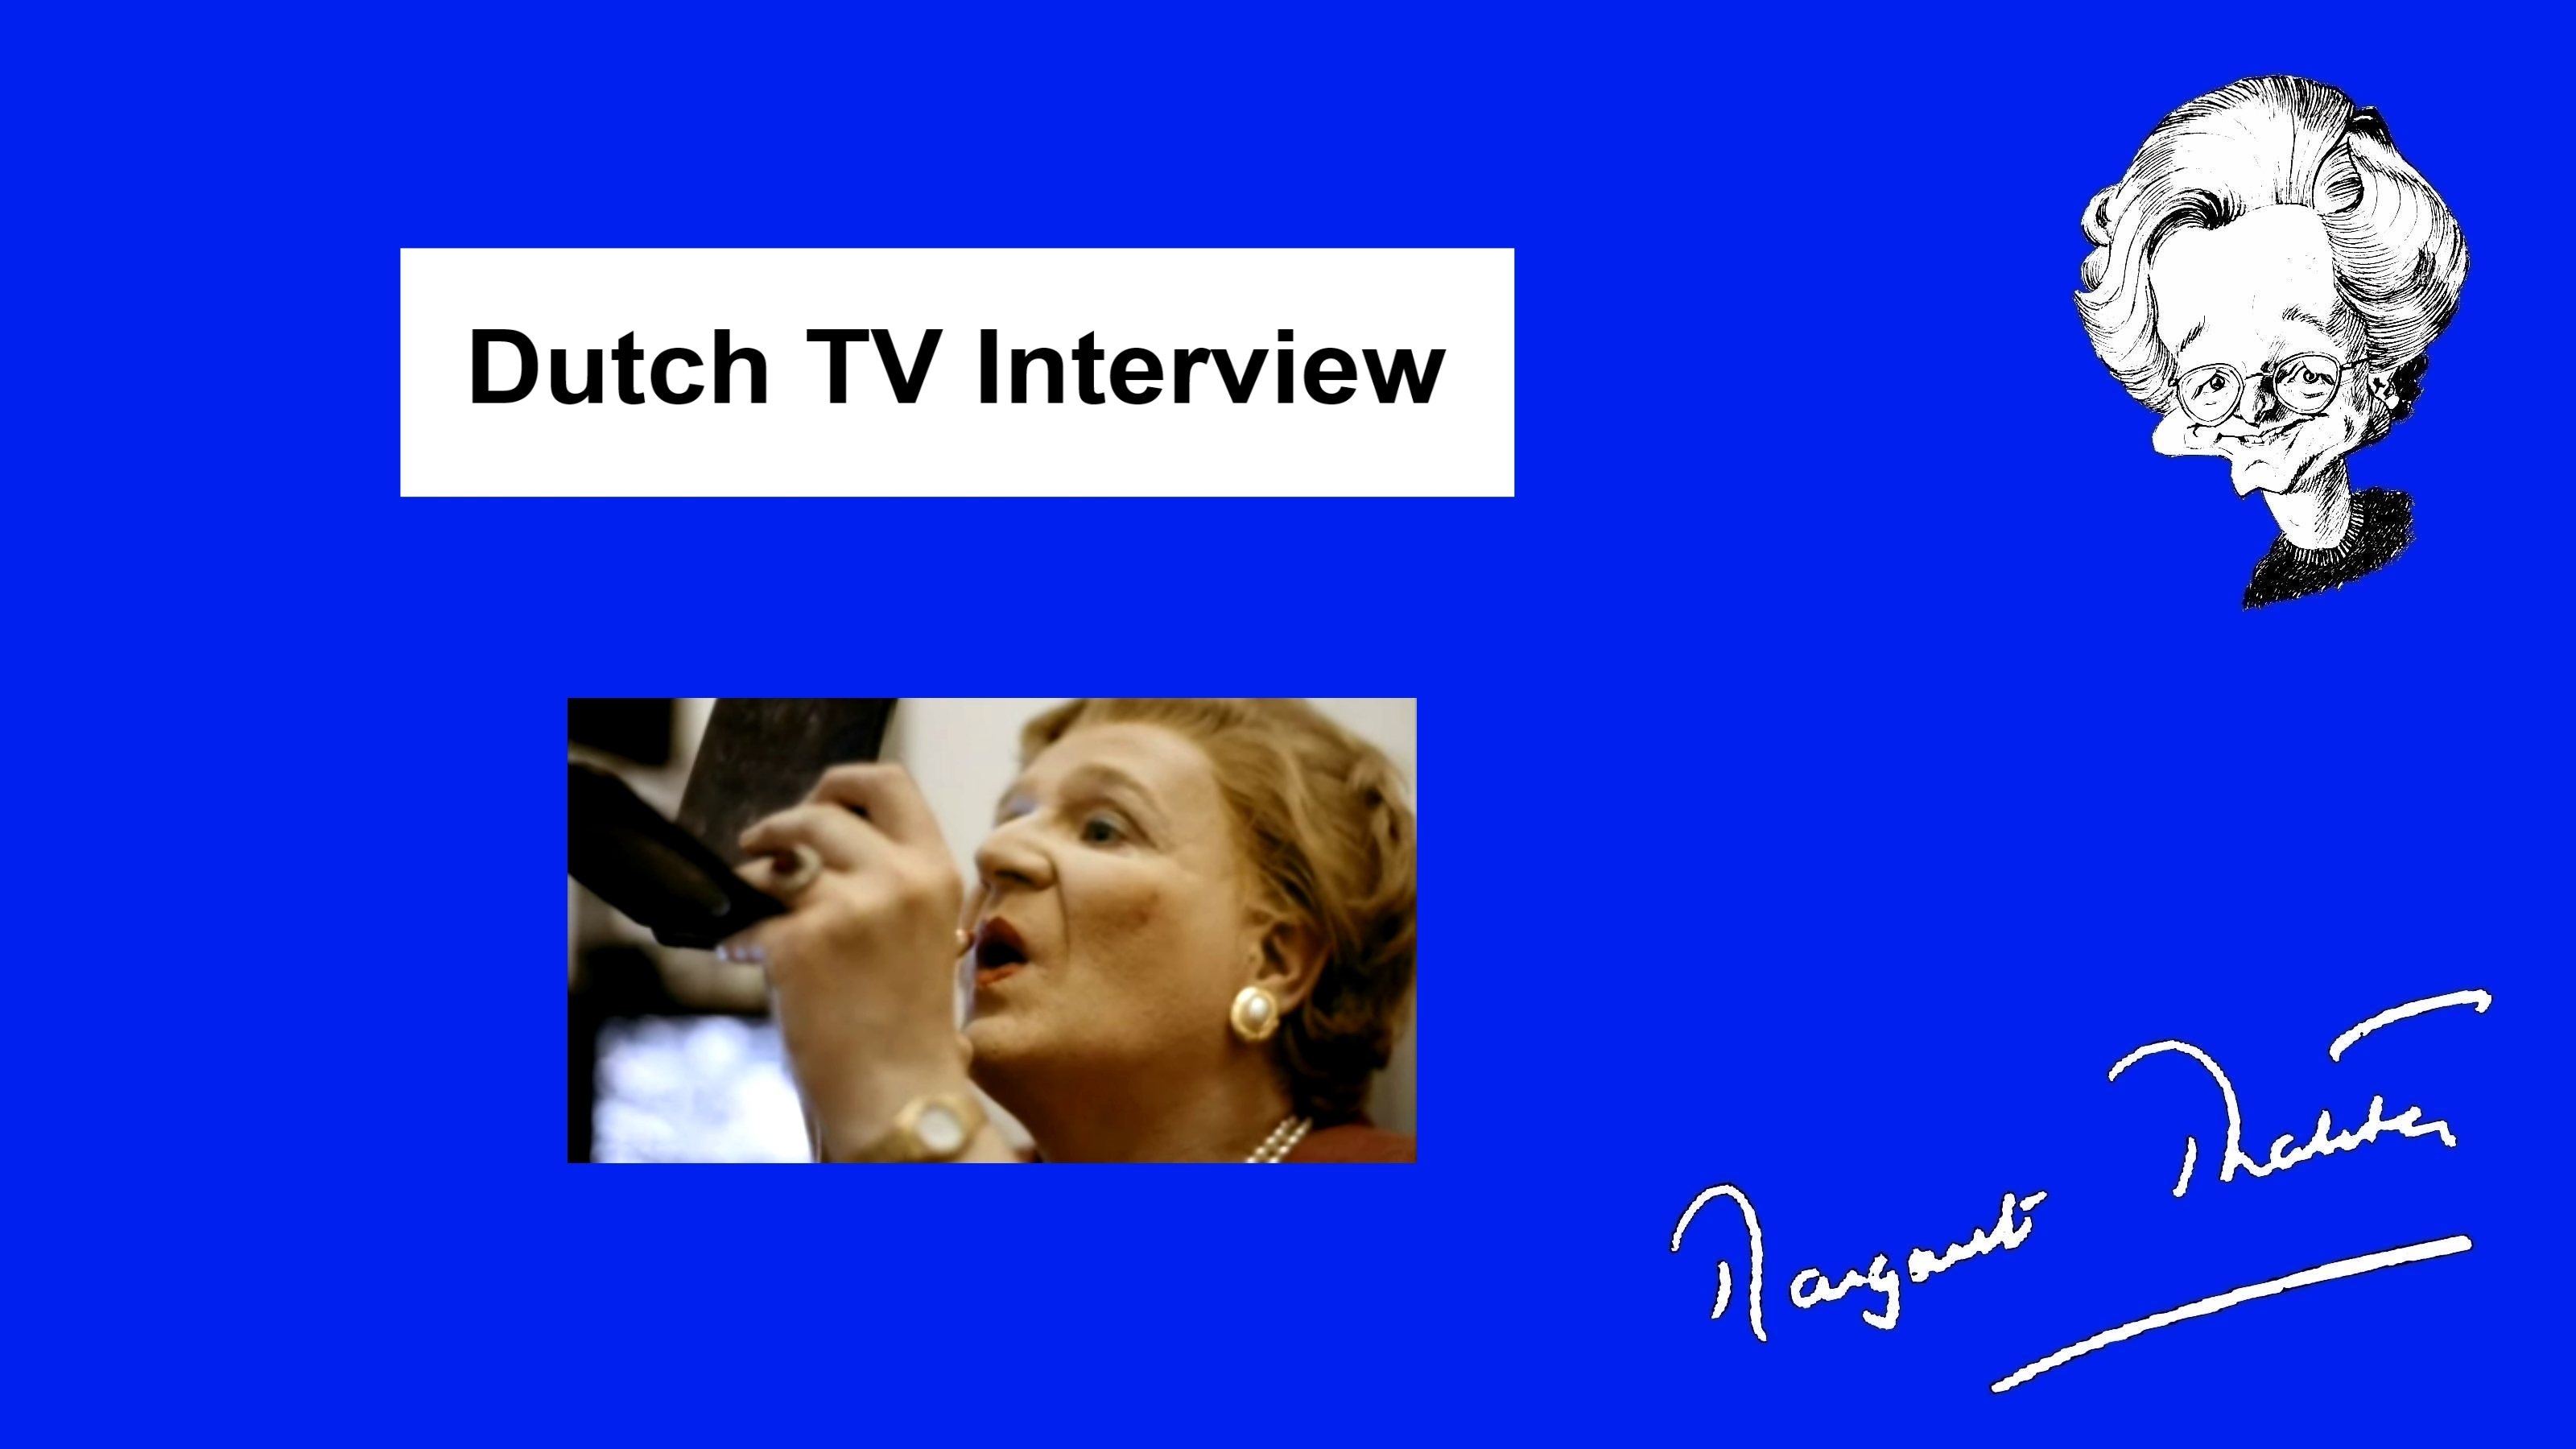 SPITTING IMAGE: Dutch TV Interview